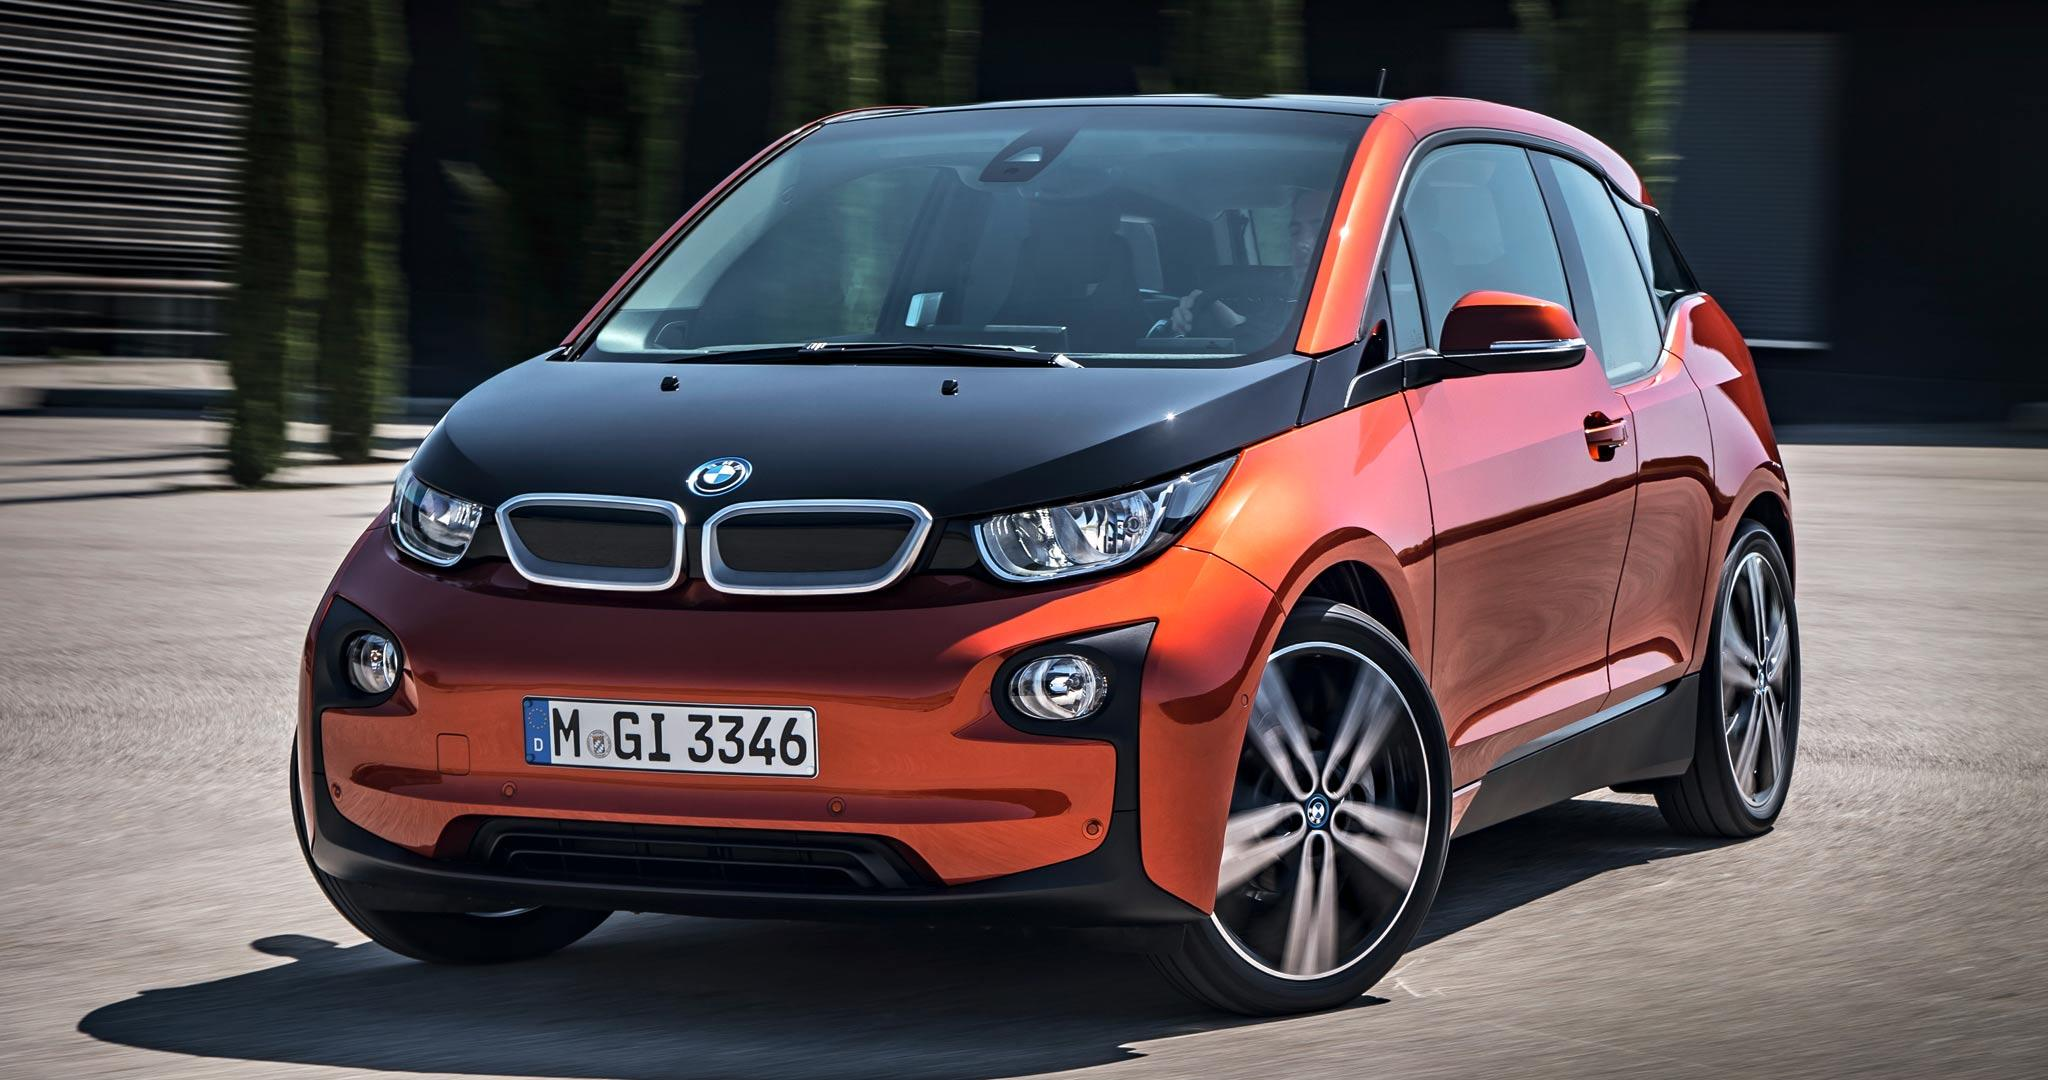 Bmw Suv Will Compete With The Tesla Model X Electric Vehicle